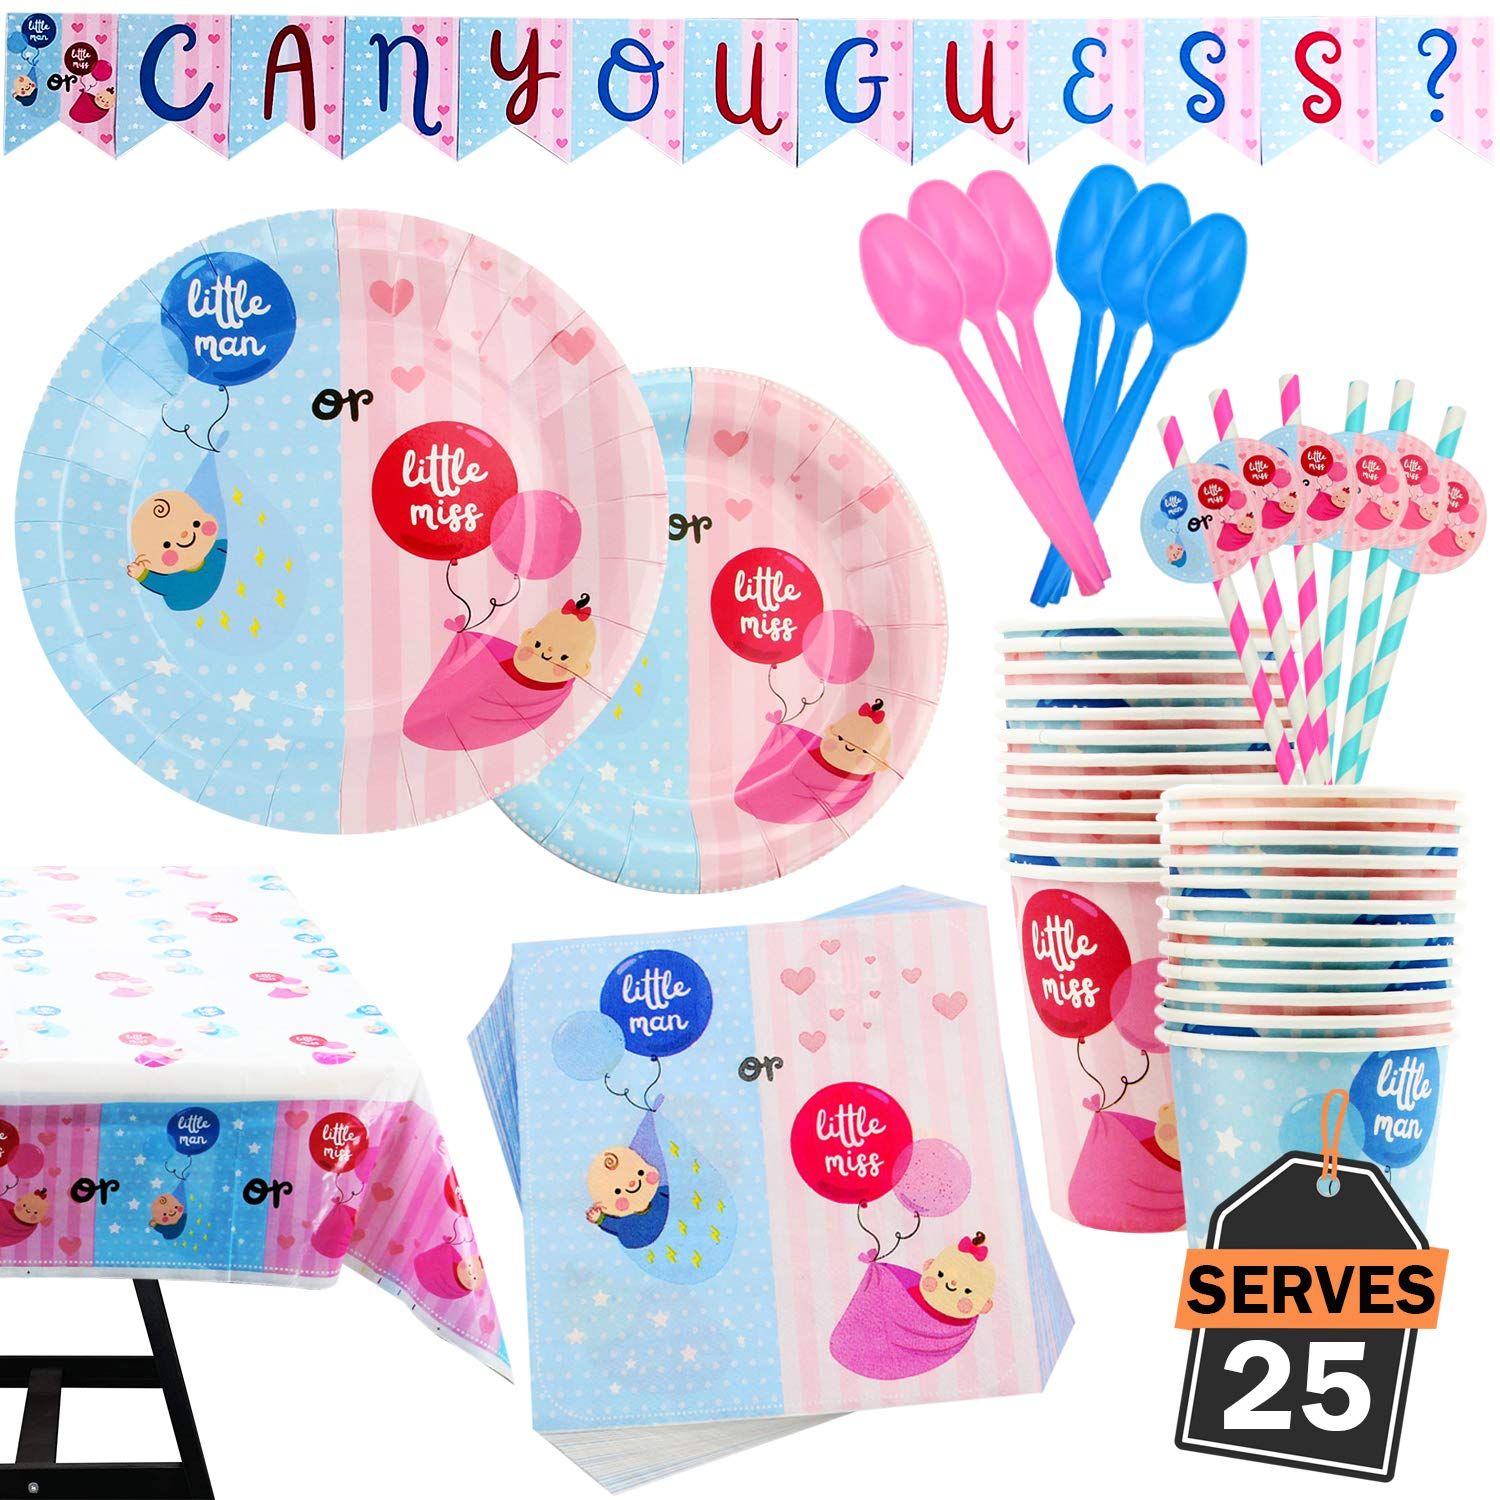 202-Piece Gender reveal Party Supplies Set Including Banner,Plates, Cups, Napkins, Spoons, Forks, Knives, Tablecloth and Straws, Serves 25